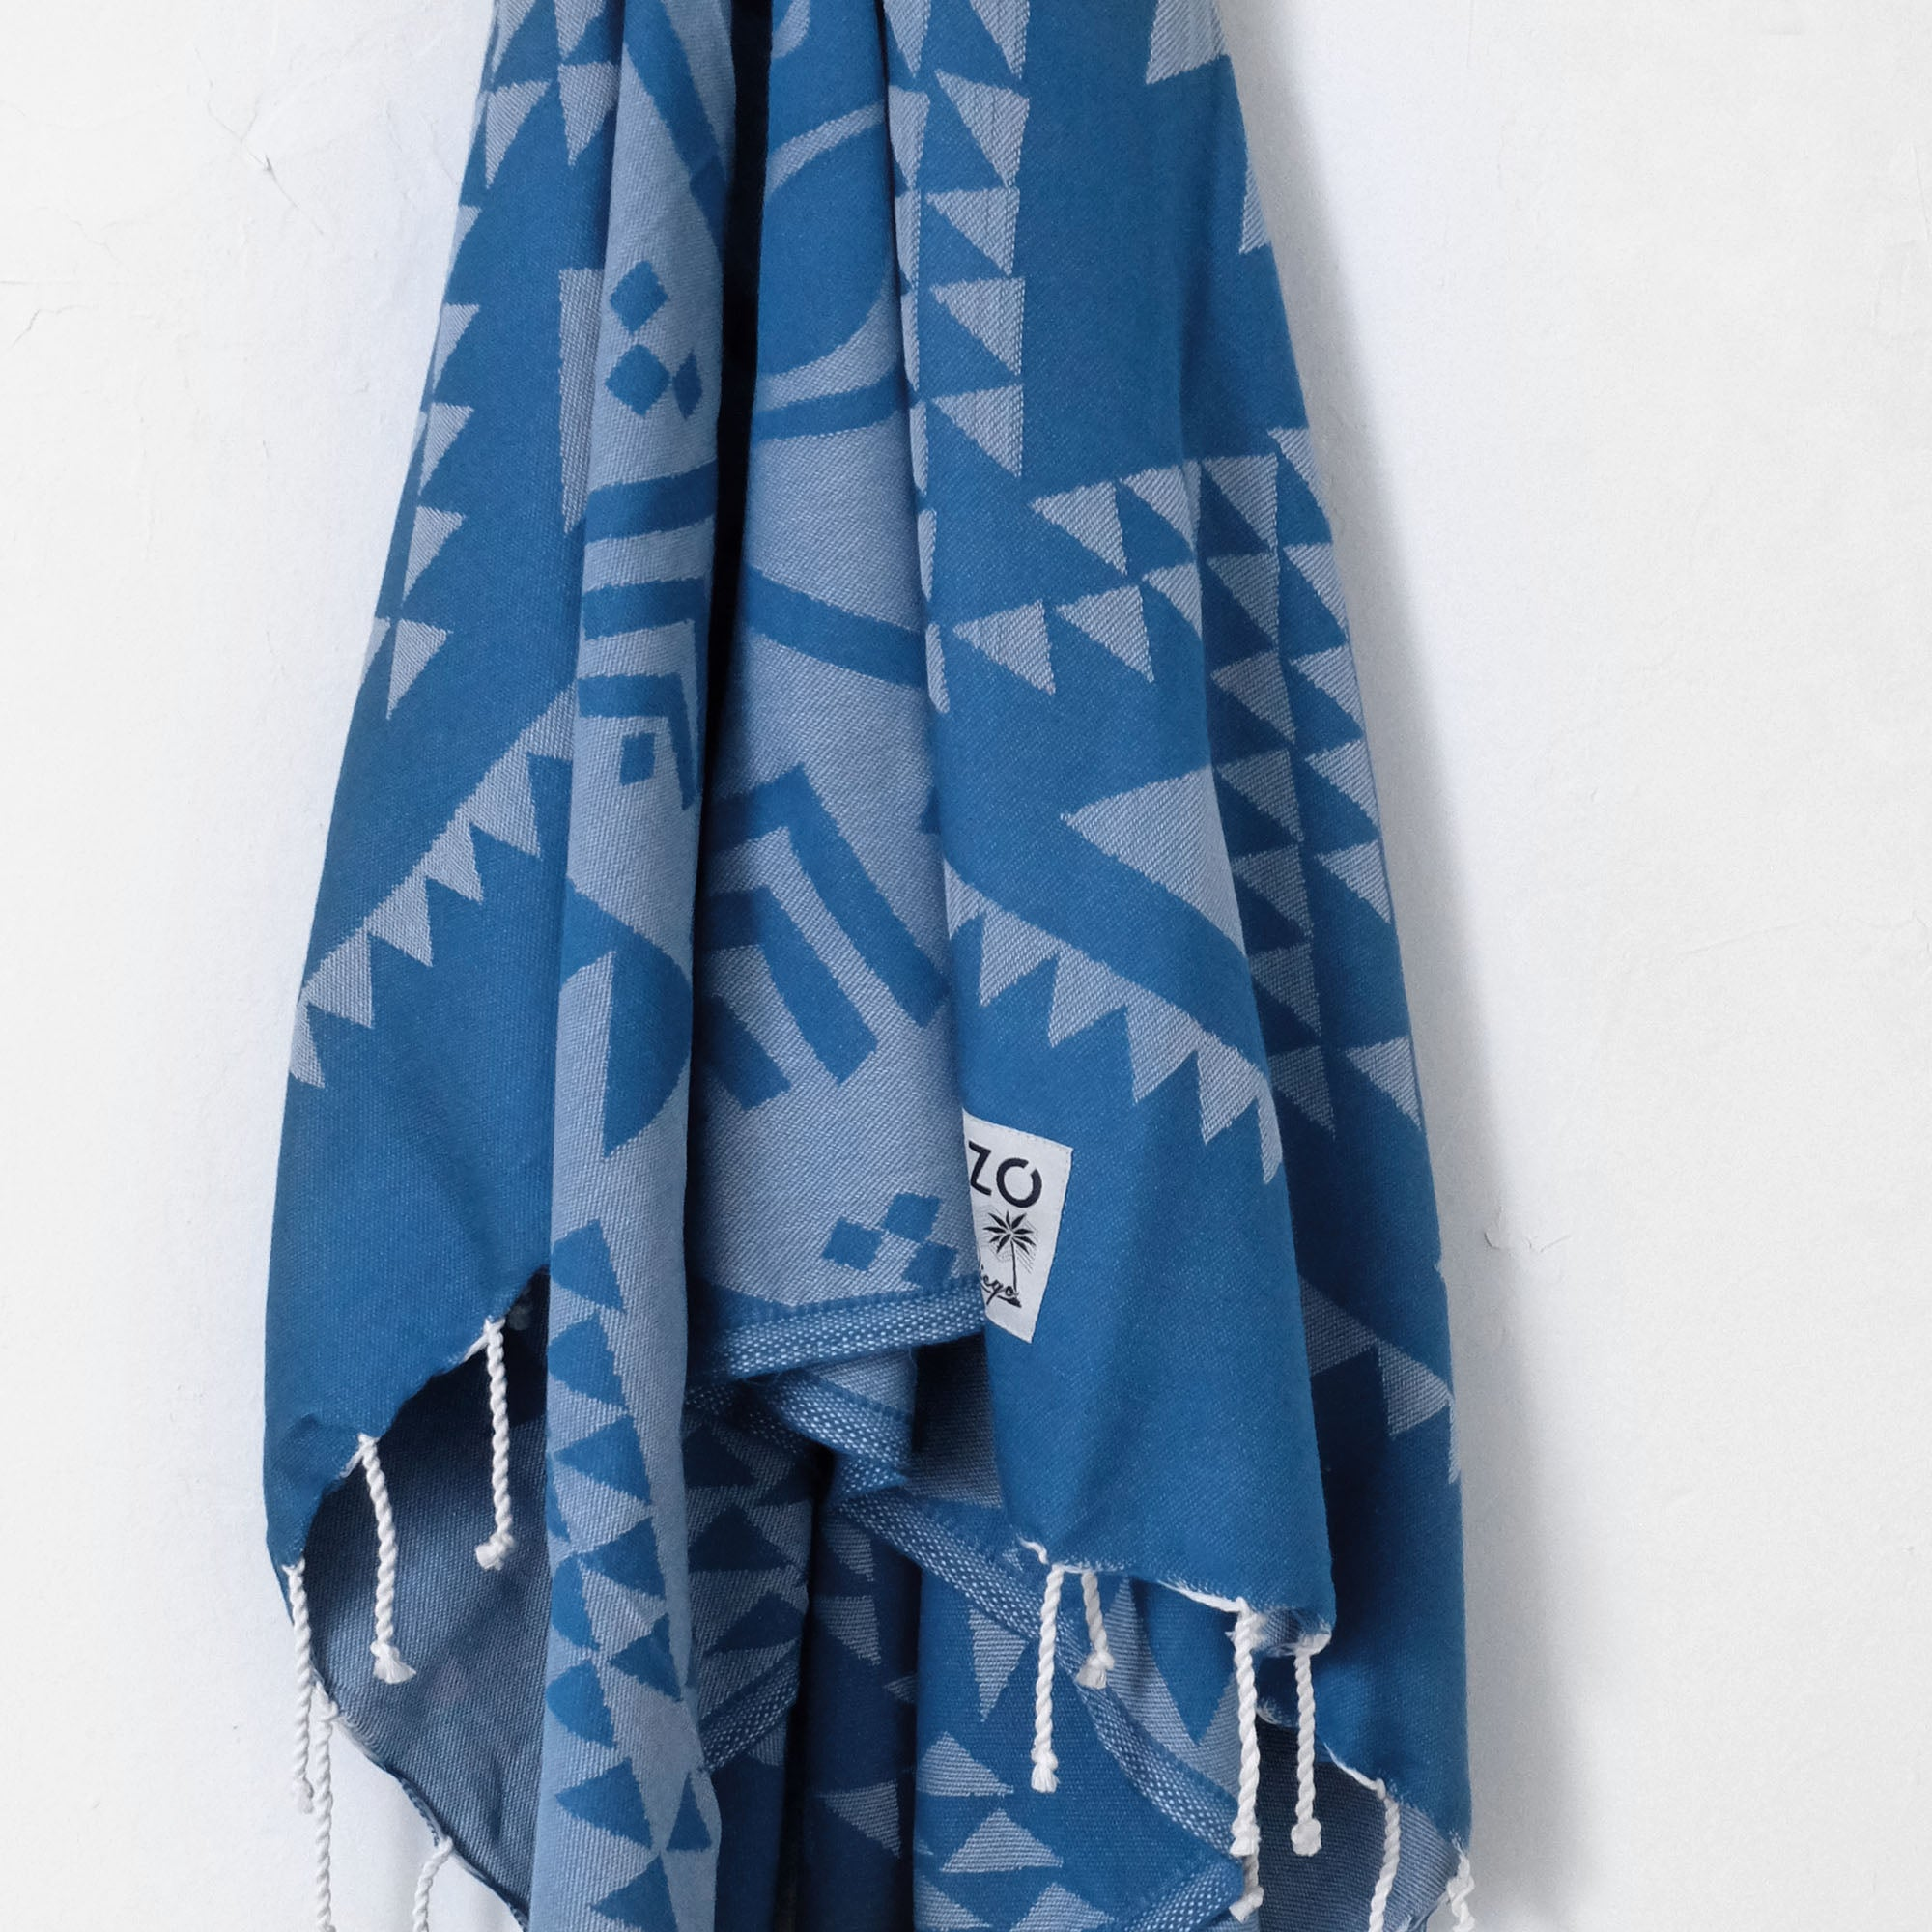 Rhapsody Teal - Beach Towel